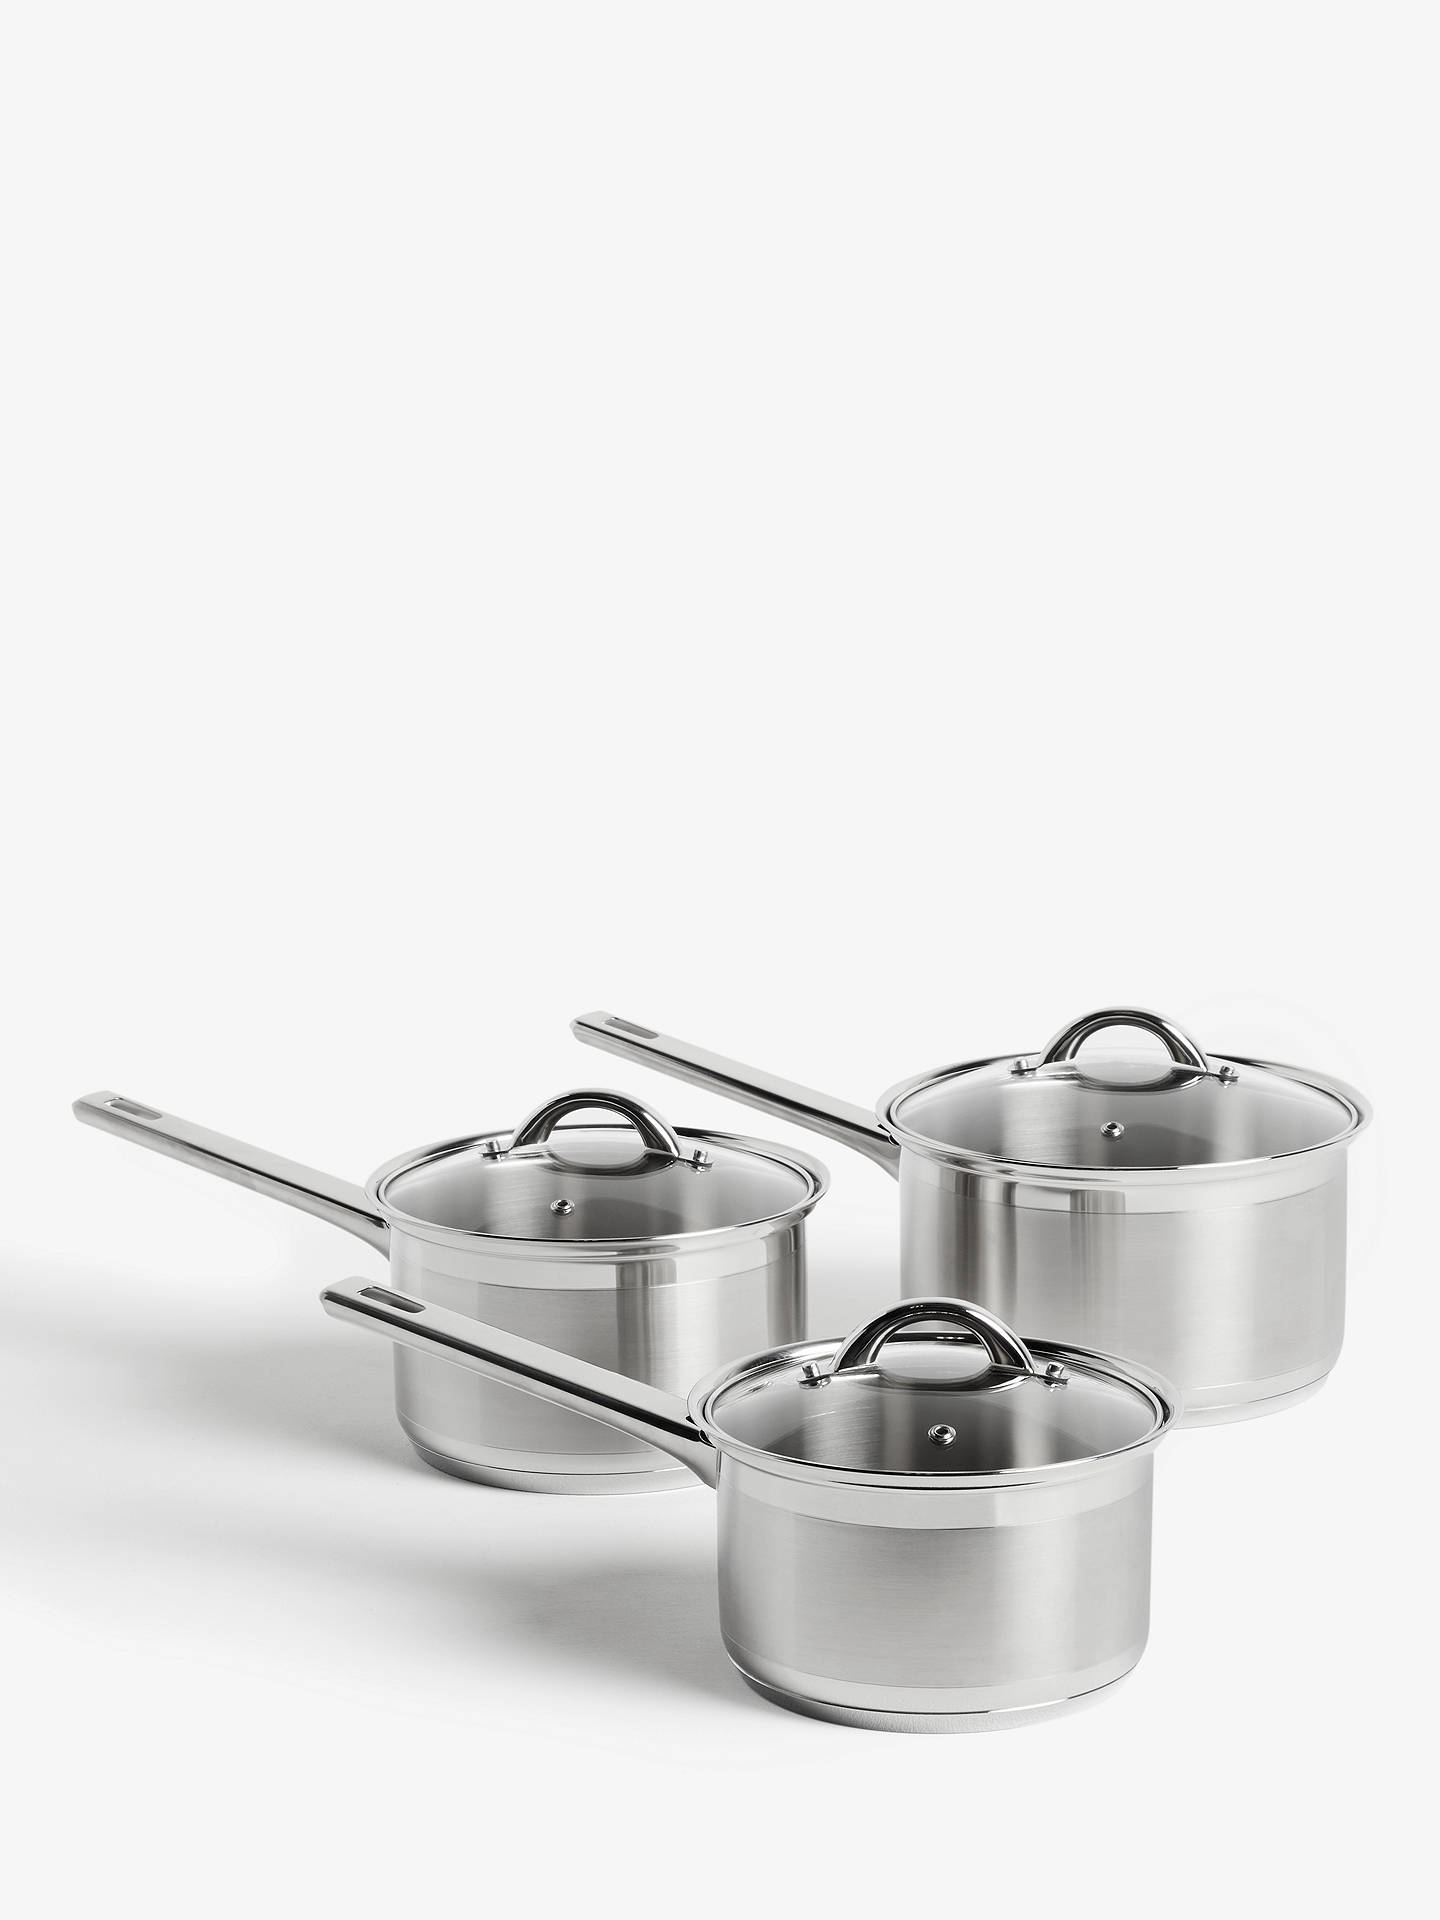 BuyJohn Lewis & Partners Classic Glass Lid Stainless Steel Saucepan Set, 3 Pieces Online at johnlewis.com